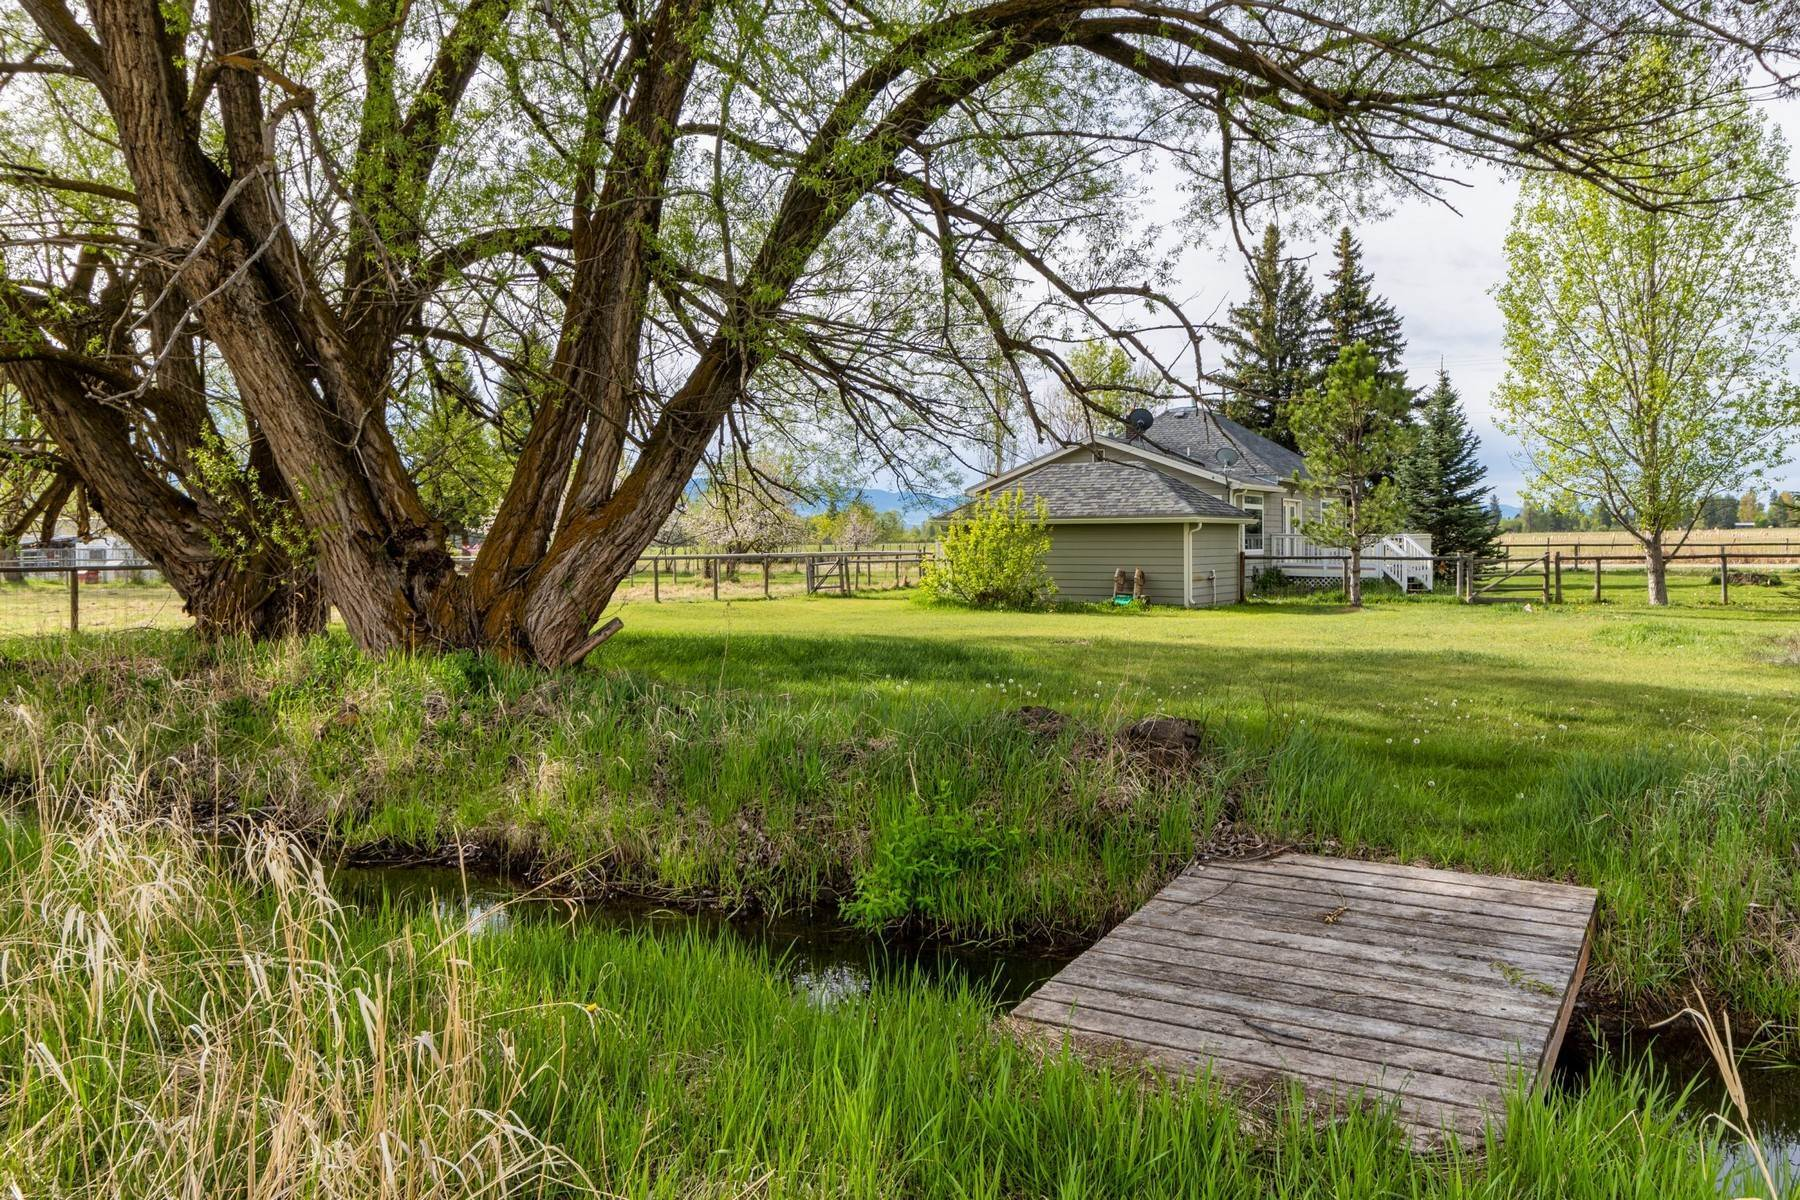 Property for Sale at 174 Victor Crossing West Victor, Montana 59875 United States